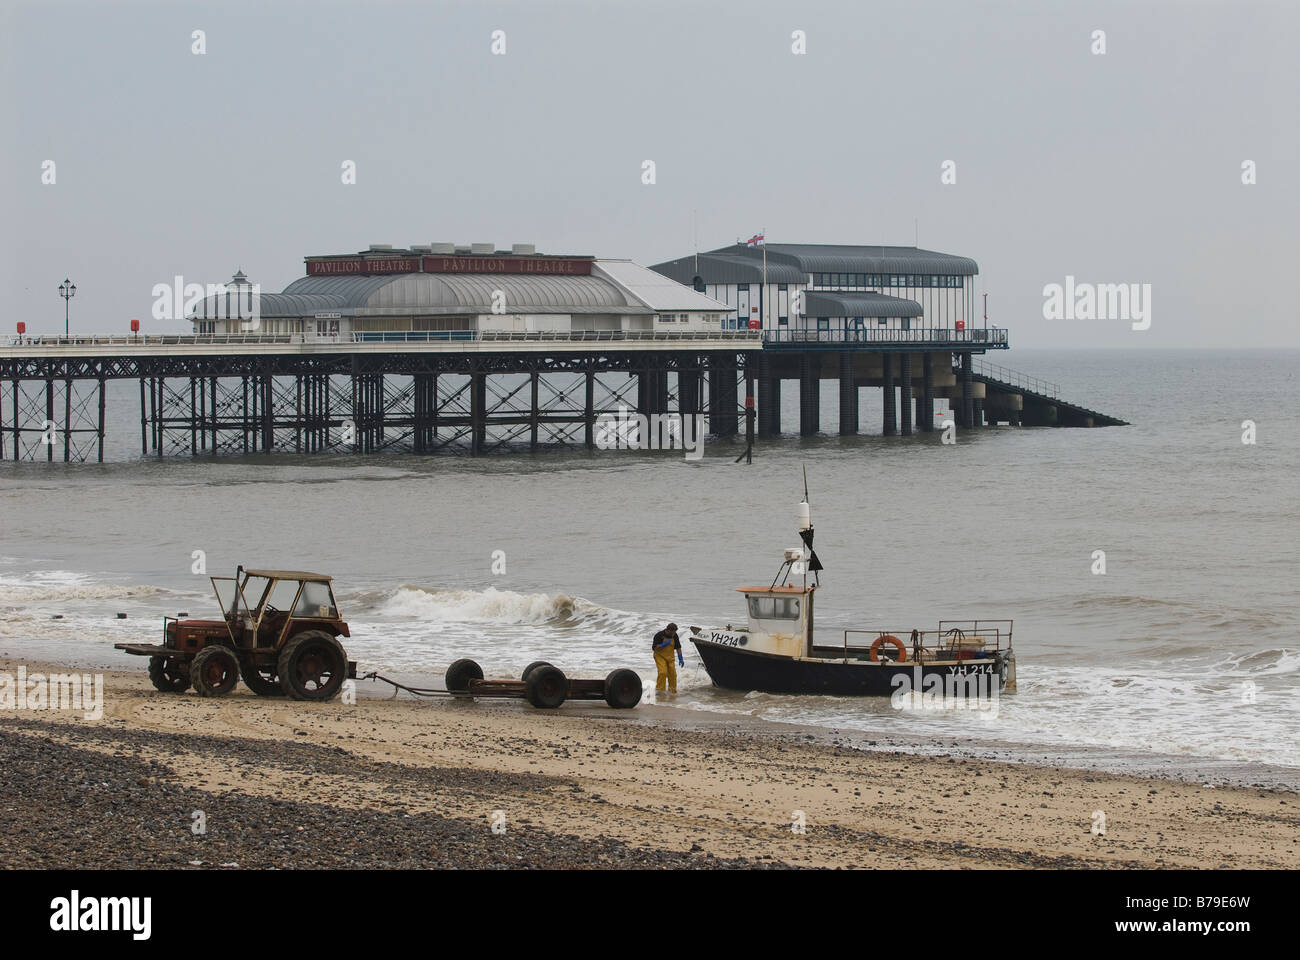 A crab fisherman retrieves his boat from the sea at Cromer near to the pier. Norfolk, UK. - Stock Image